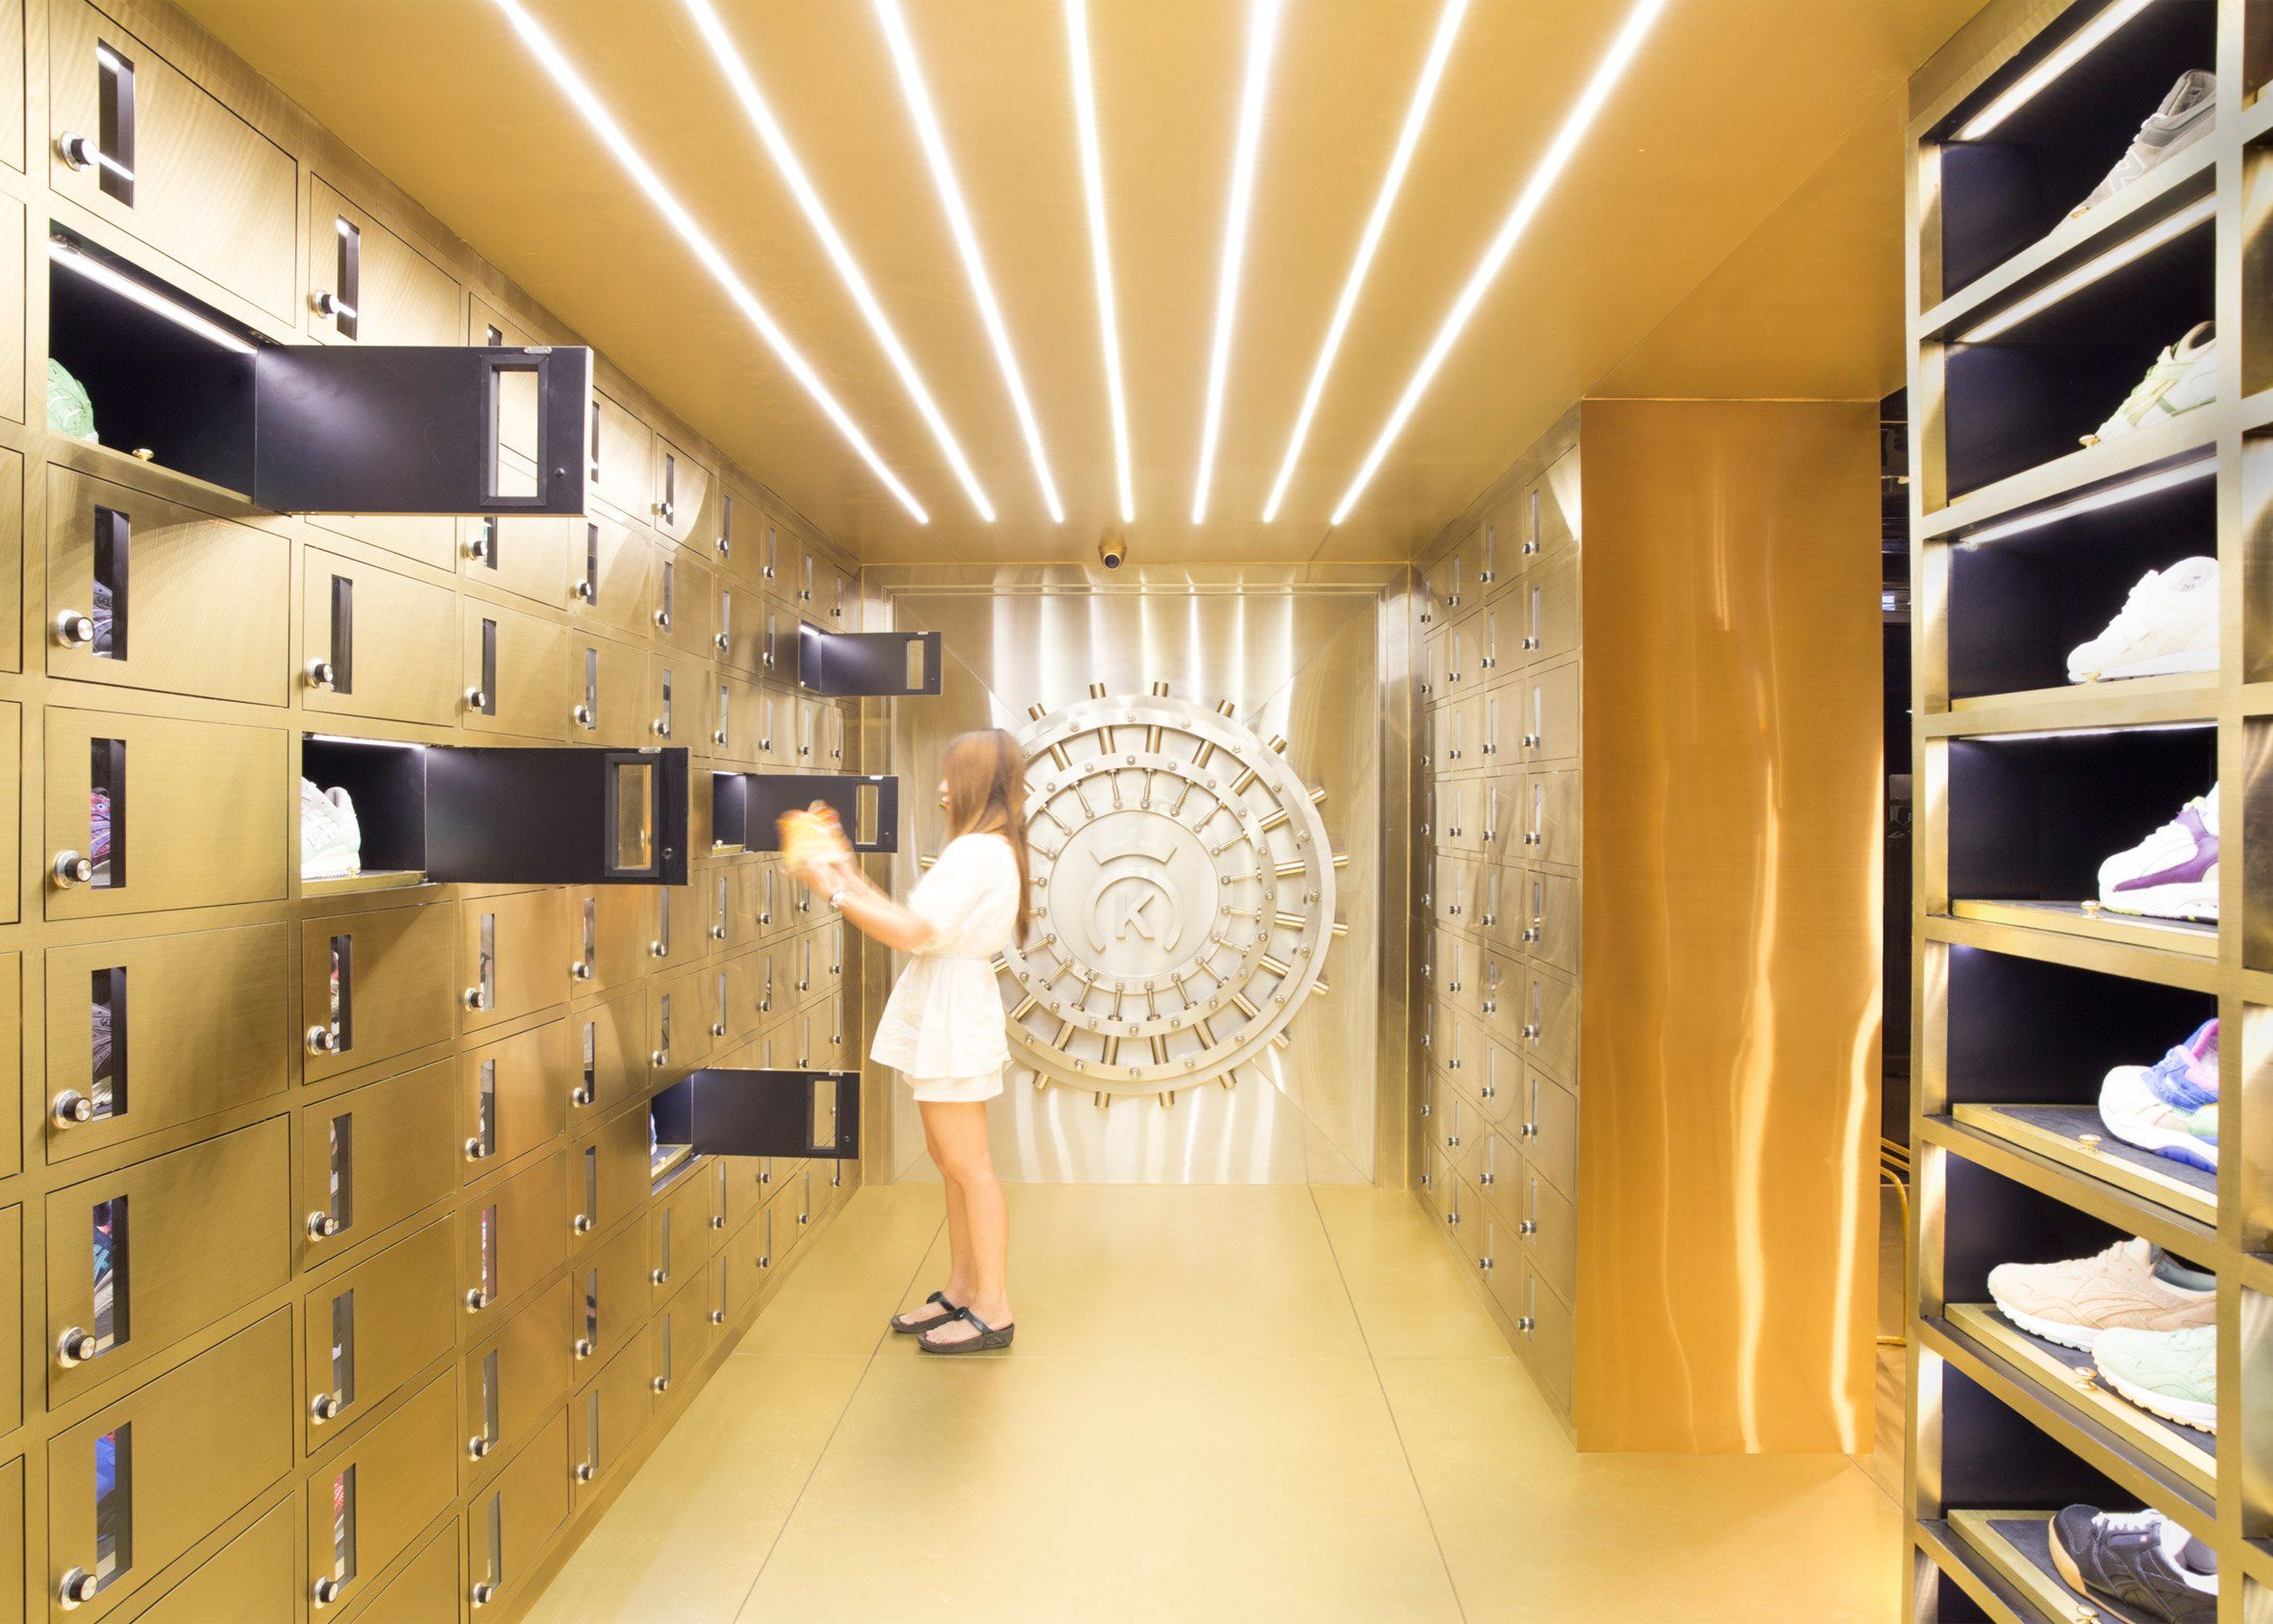 Safety Deposit Boxes Function As Display Cabinets In This Bangkok Shop For Spanish Footwear Brand 24 Kilates Retail Design Retail Store Design Store Design